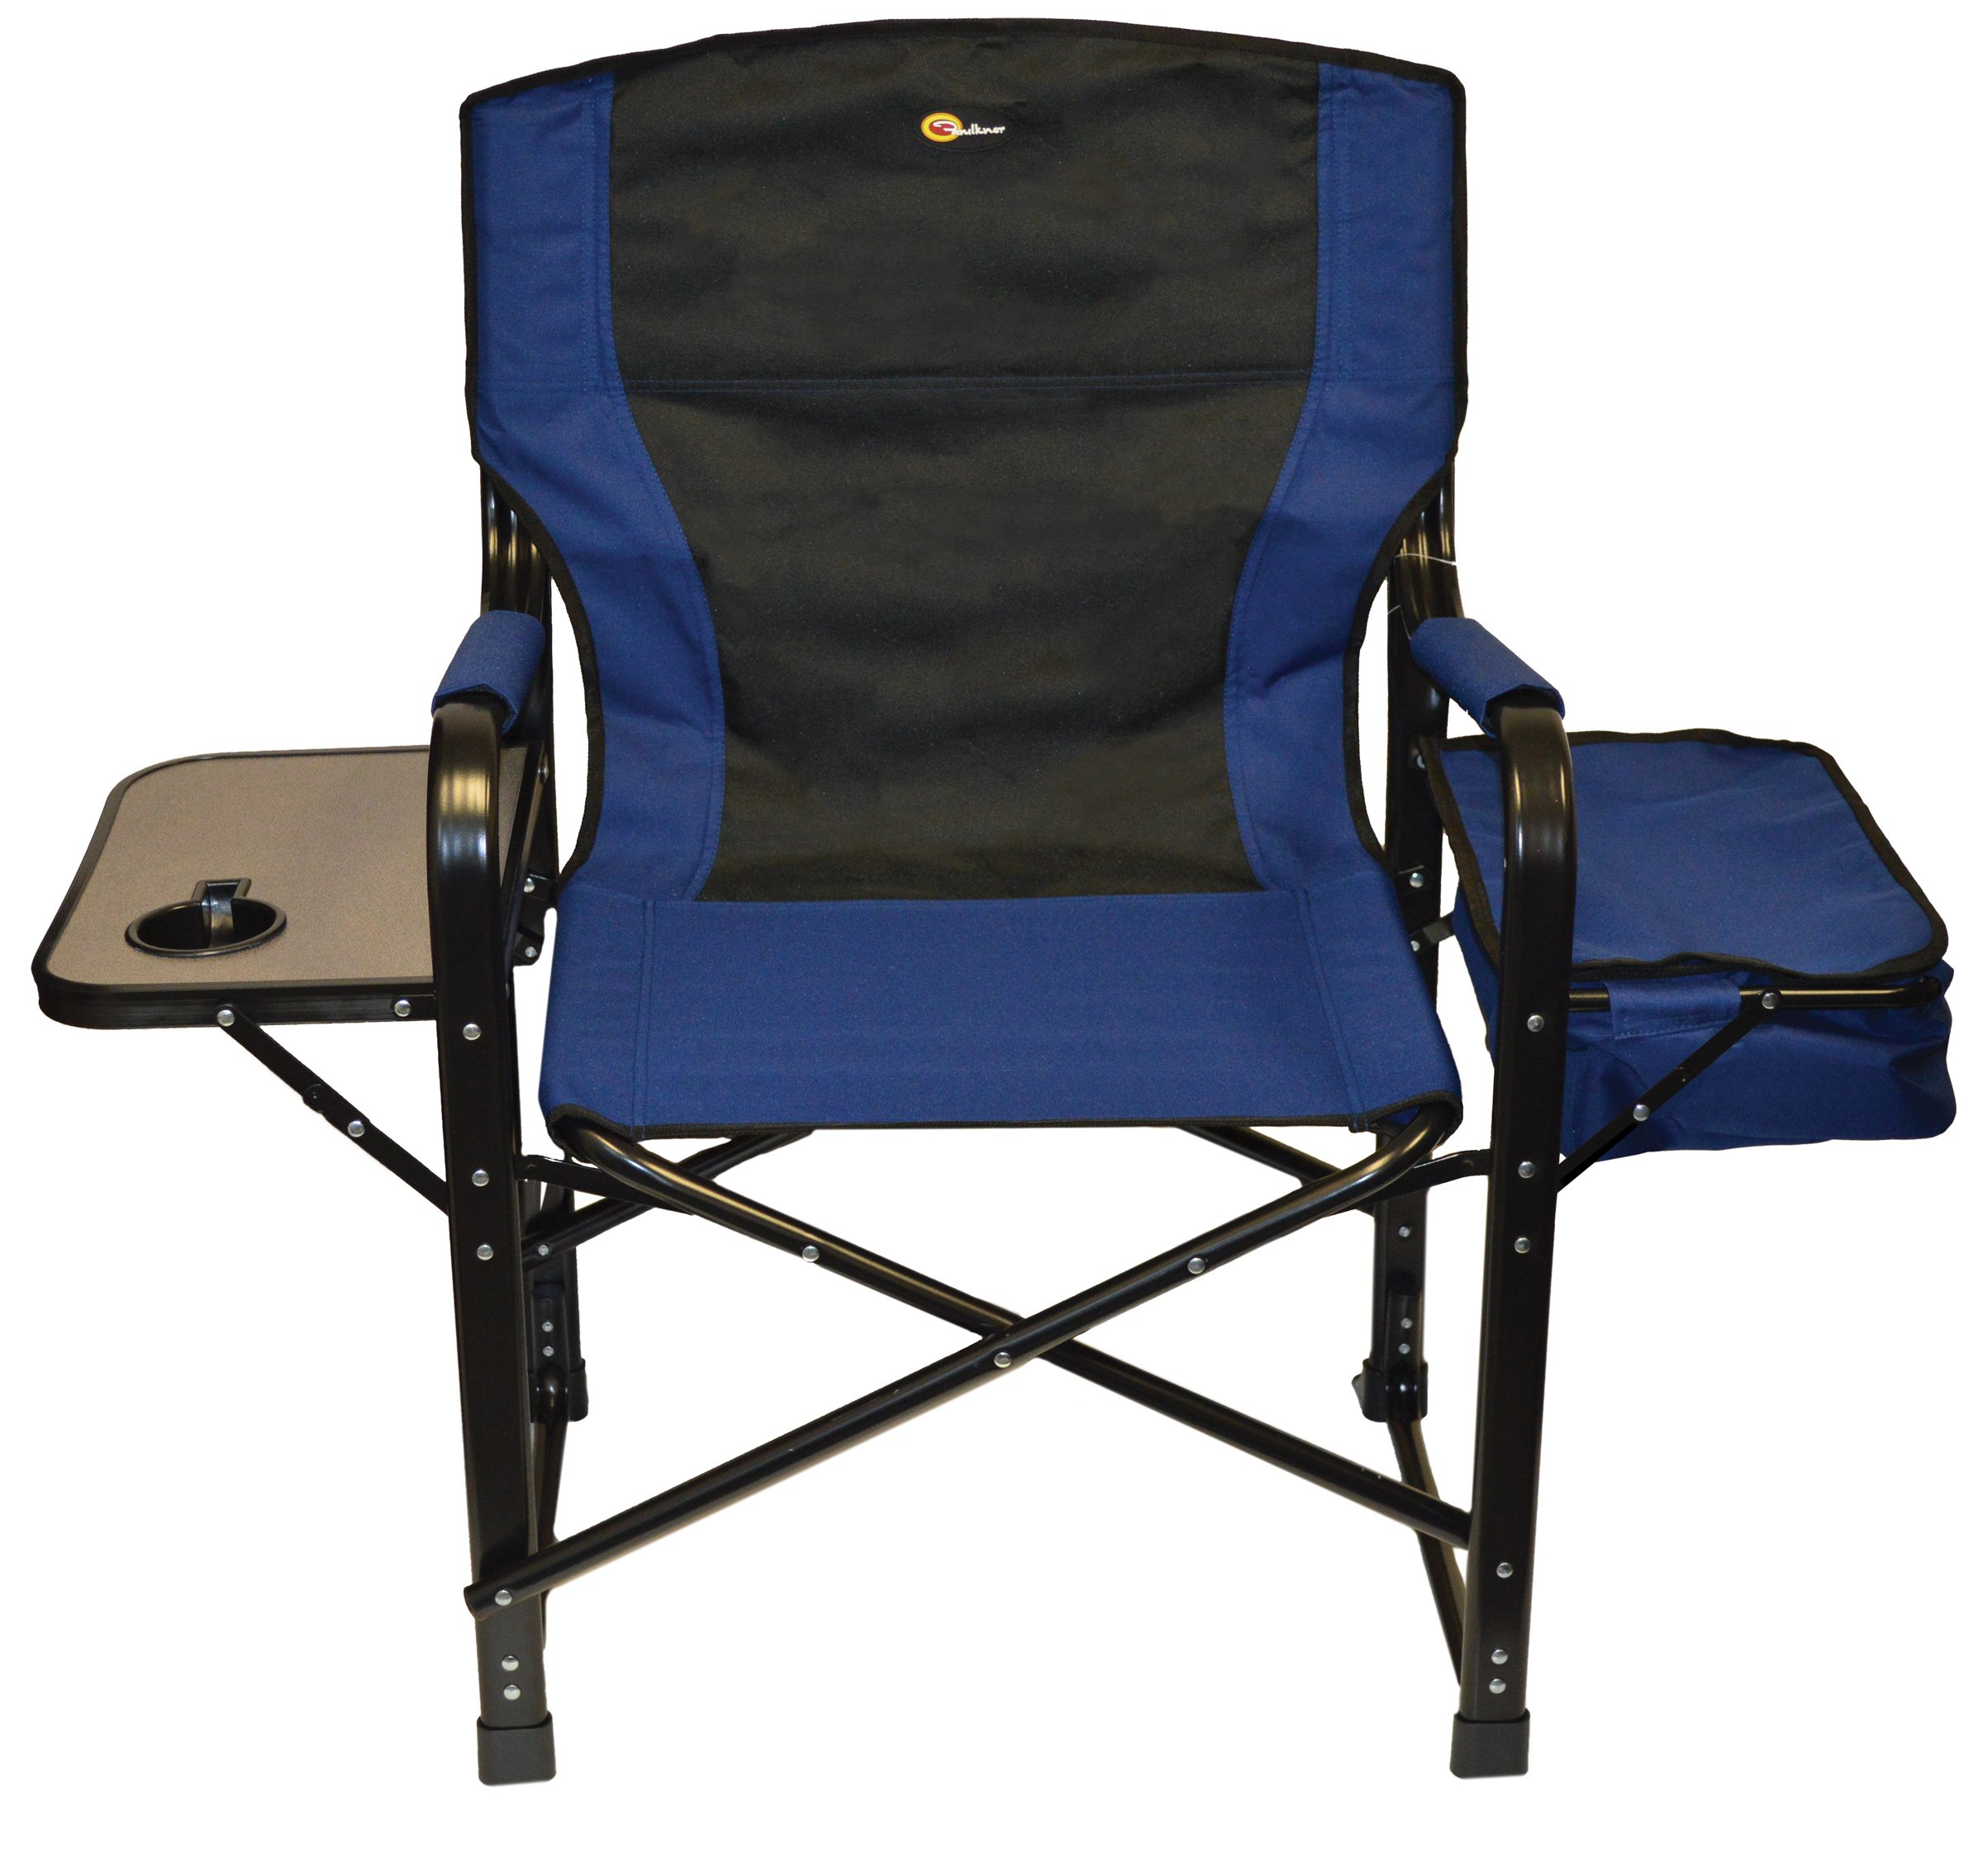 Faulkner 49581 El Capitan Folding Director Chair with Tray and Cooler Bag, Blue/Black by Faulkner